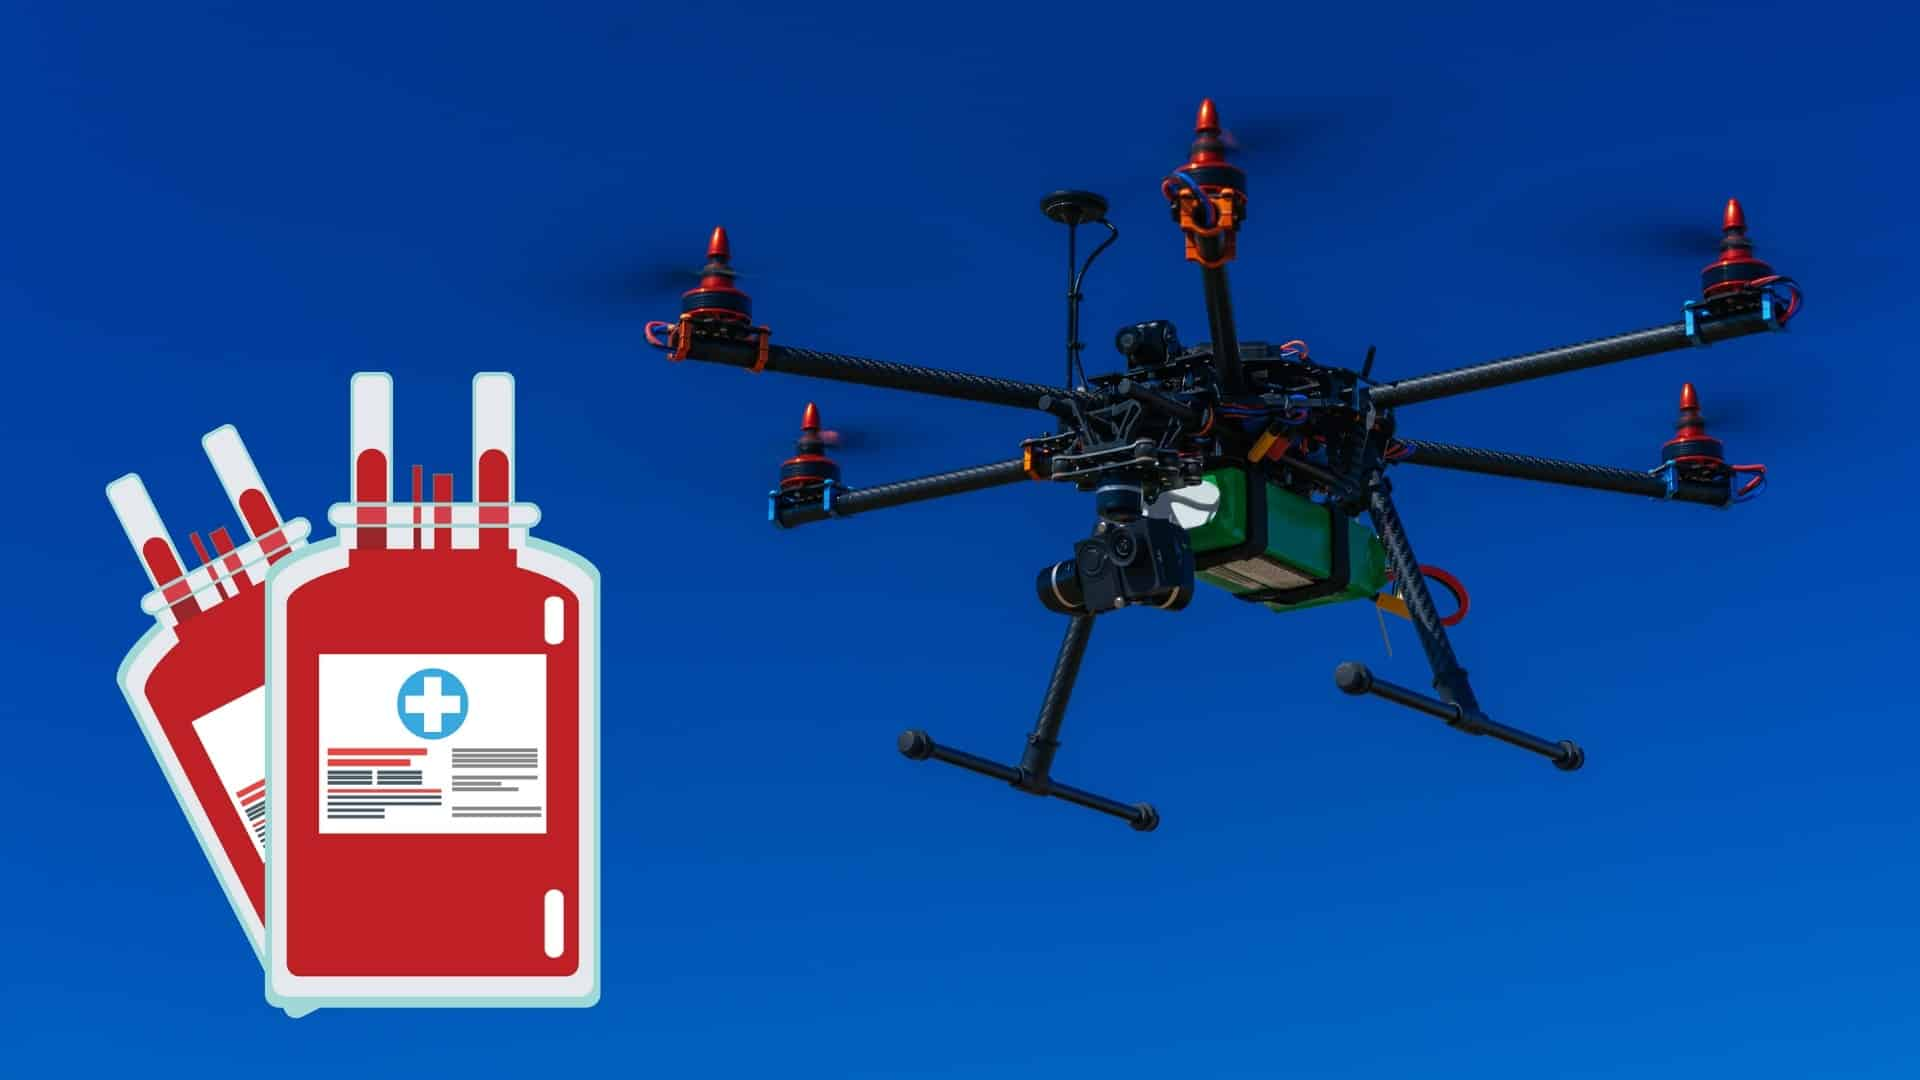 Zipline Announces a Drone Based Emergency Service Delivery Network in Philippine